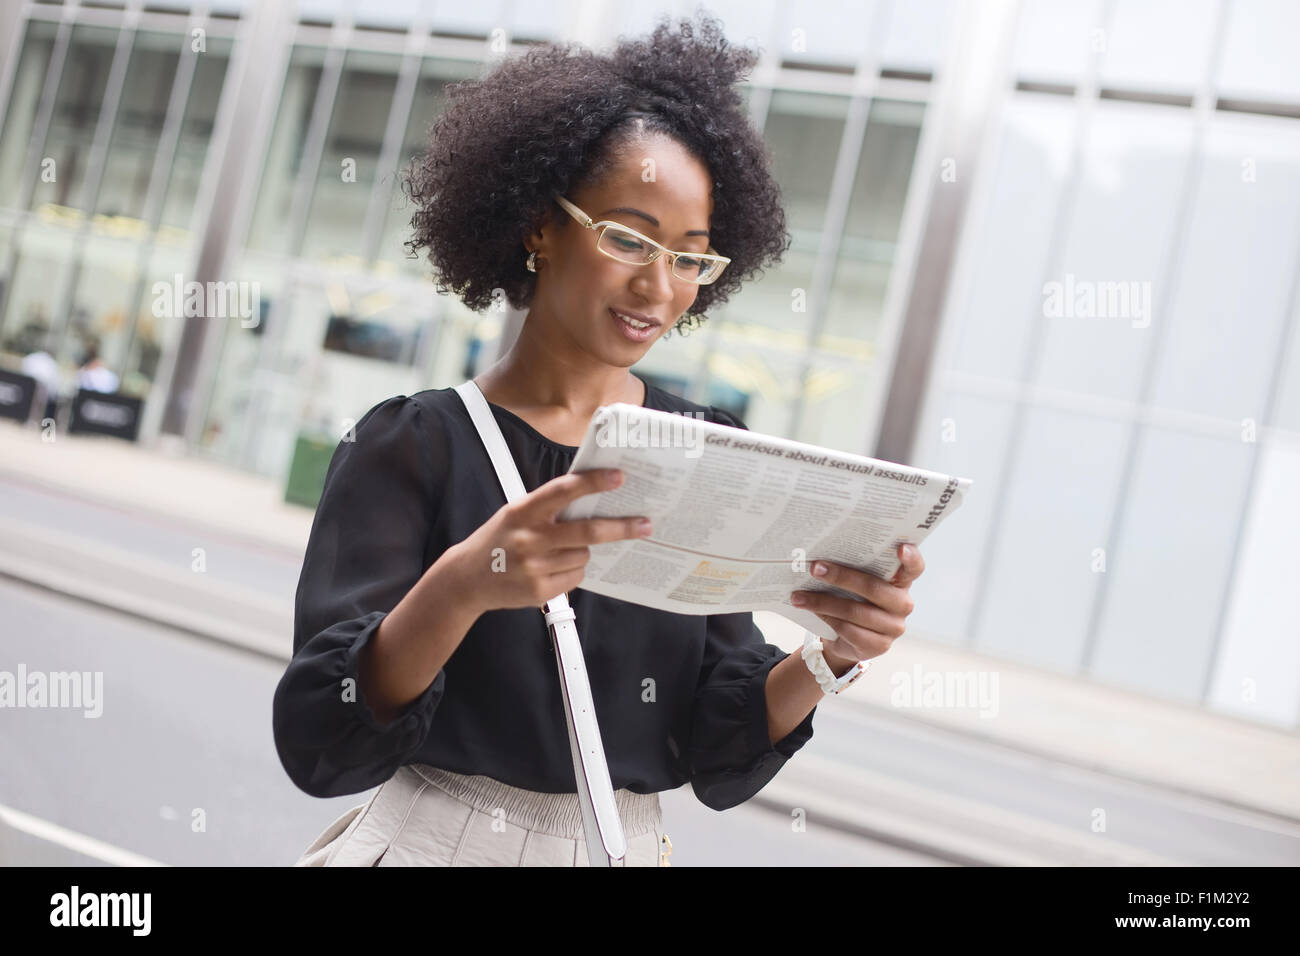 african american woman reading news stock photos & african american